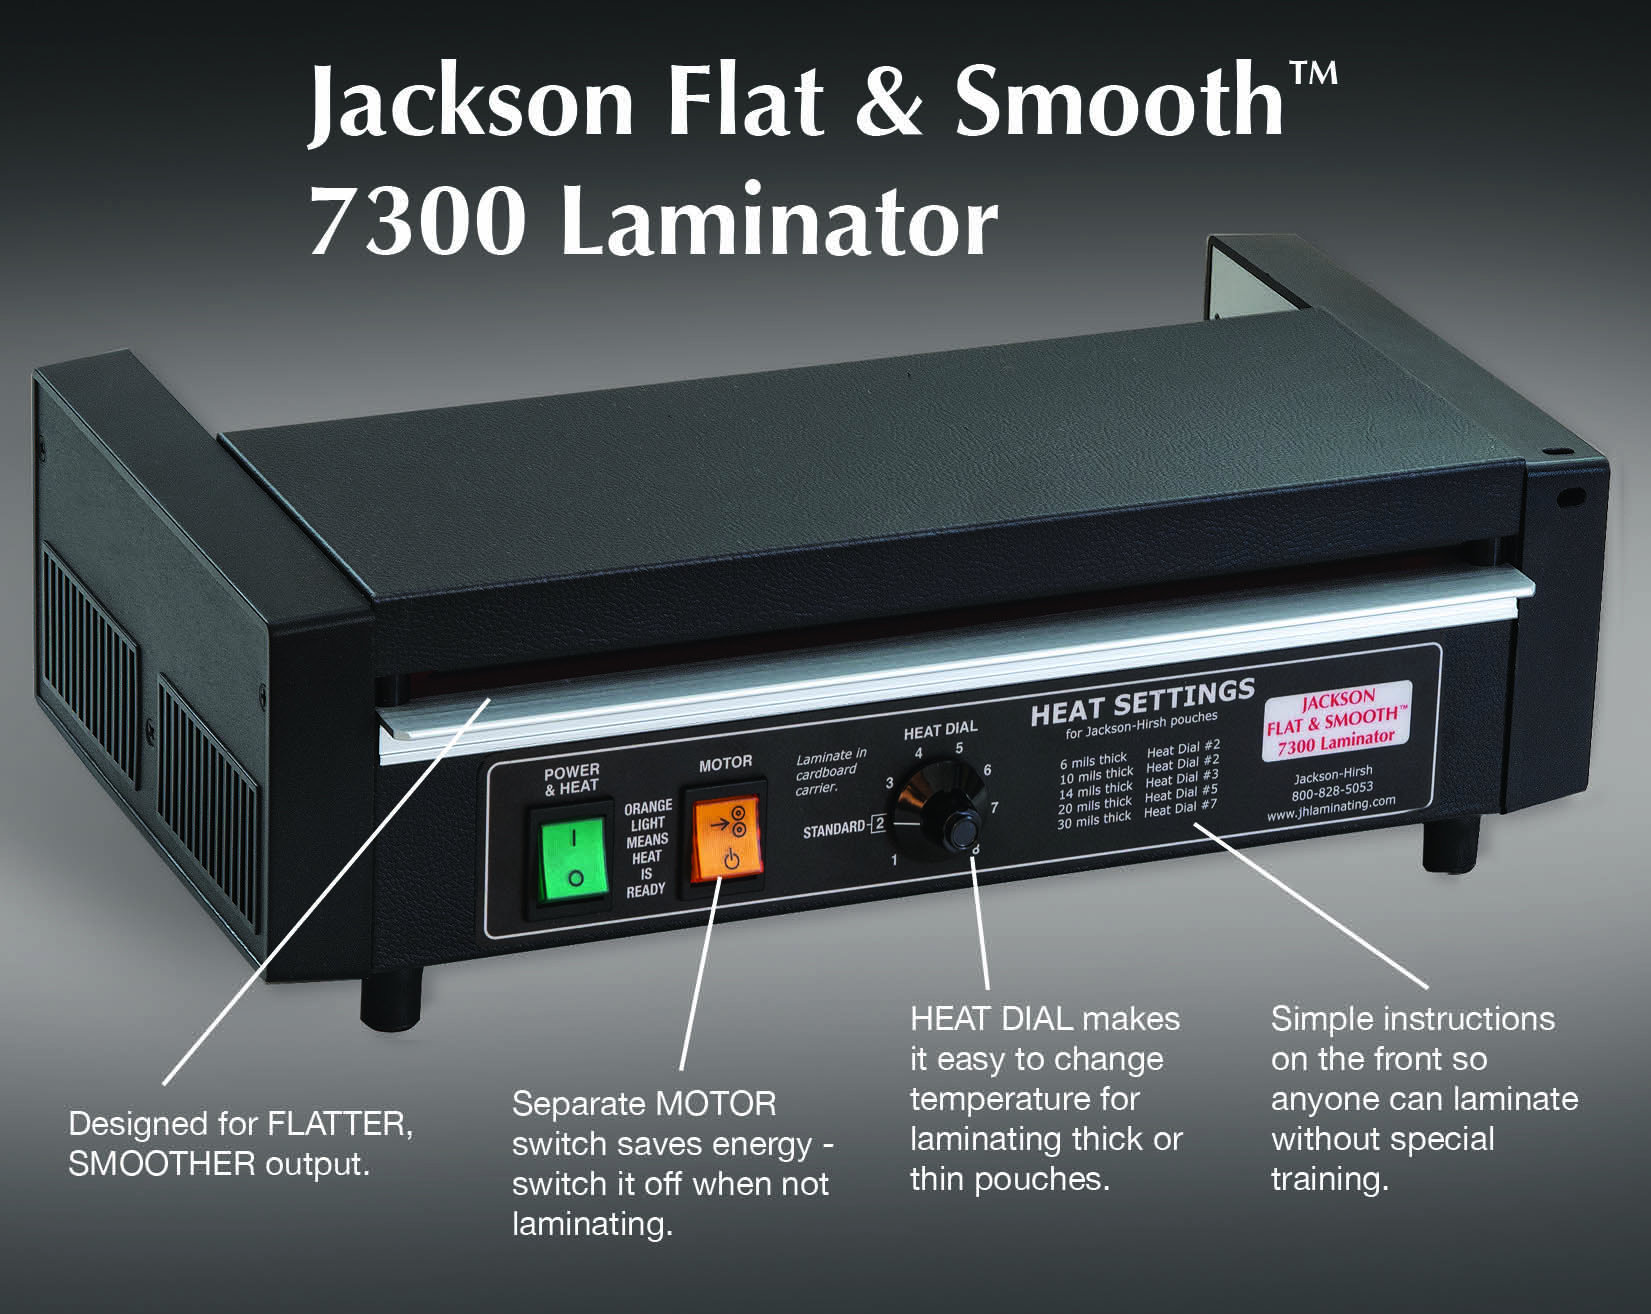 1123_v4_Laminator73_JacksonFlatSmooth1809_with_callouts